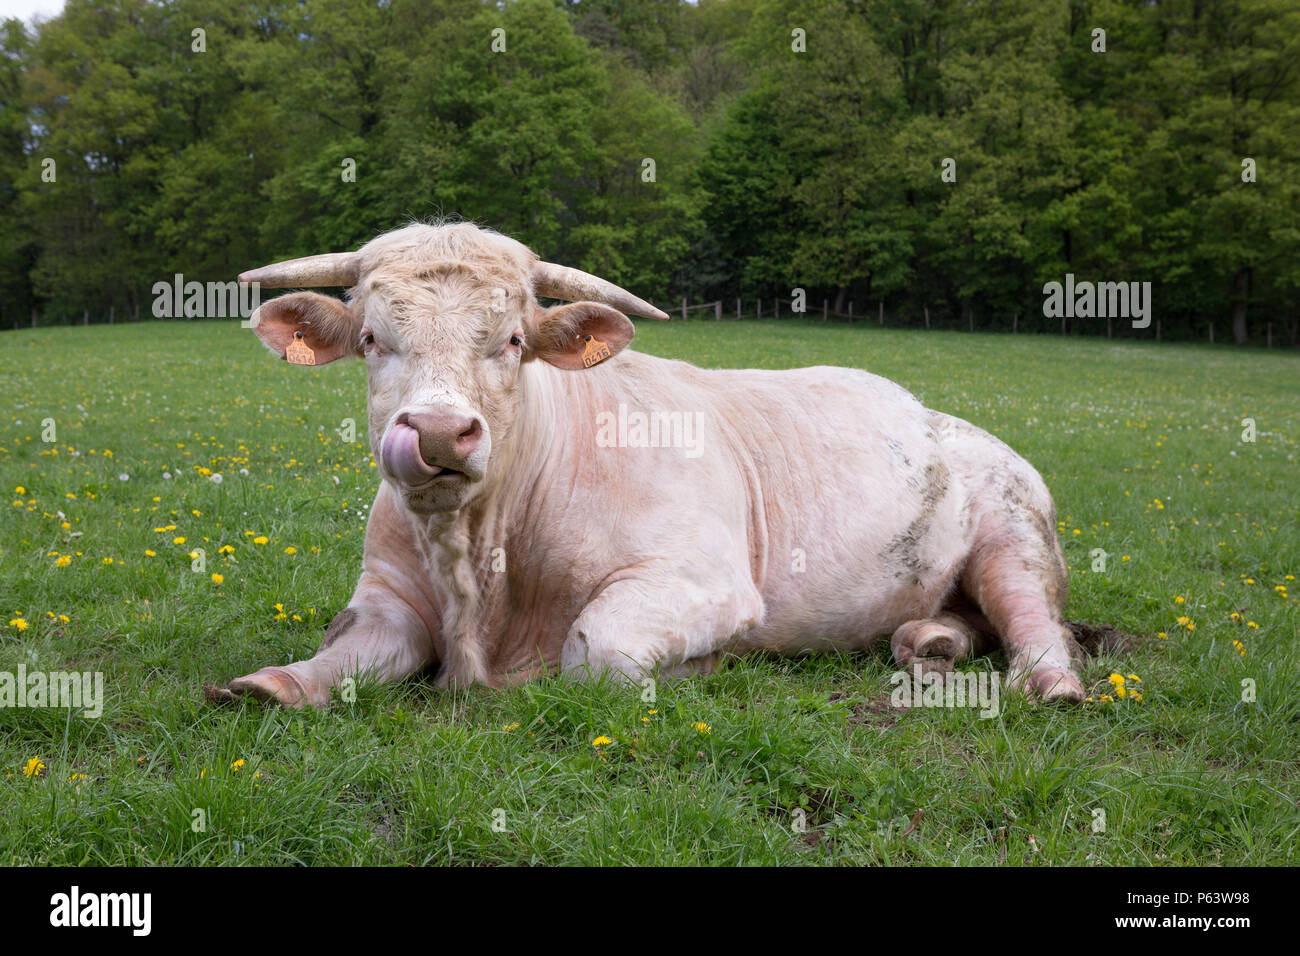 A young Charolais bull ruminating in a green pasture, licking it's nose with his tongue. - Stock Image